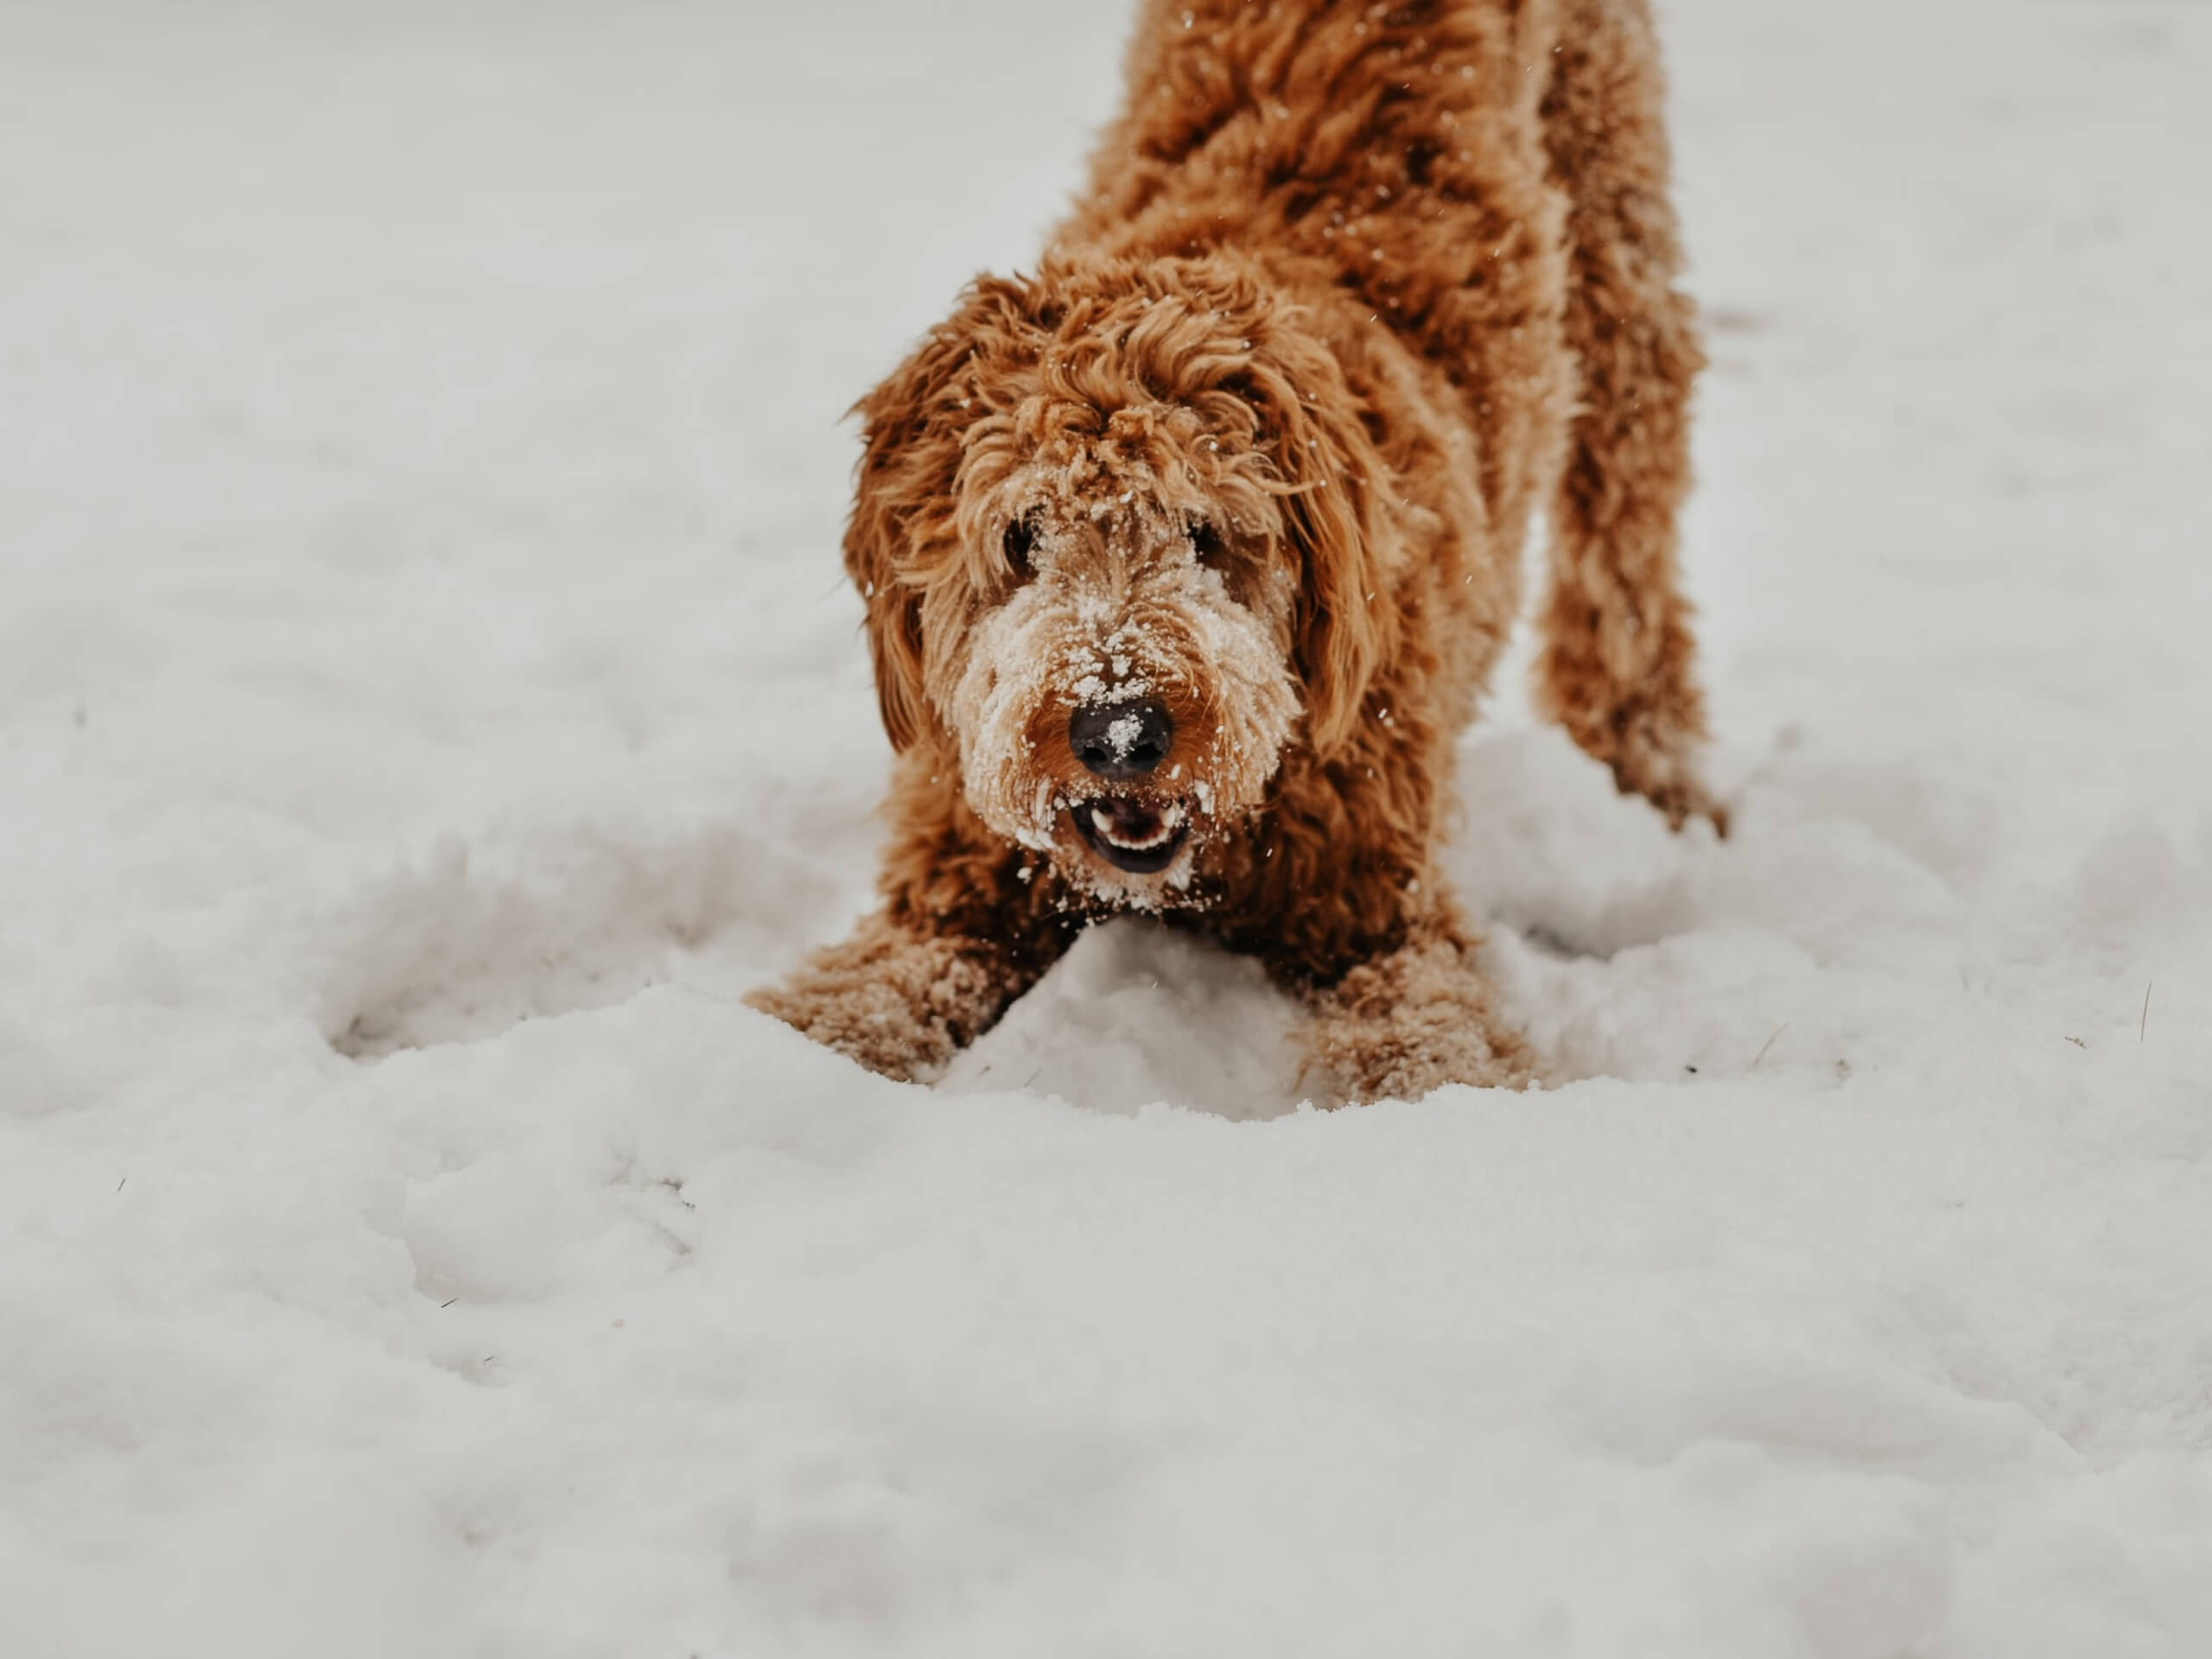 A brown doodle playing in the snow.